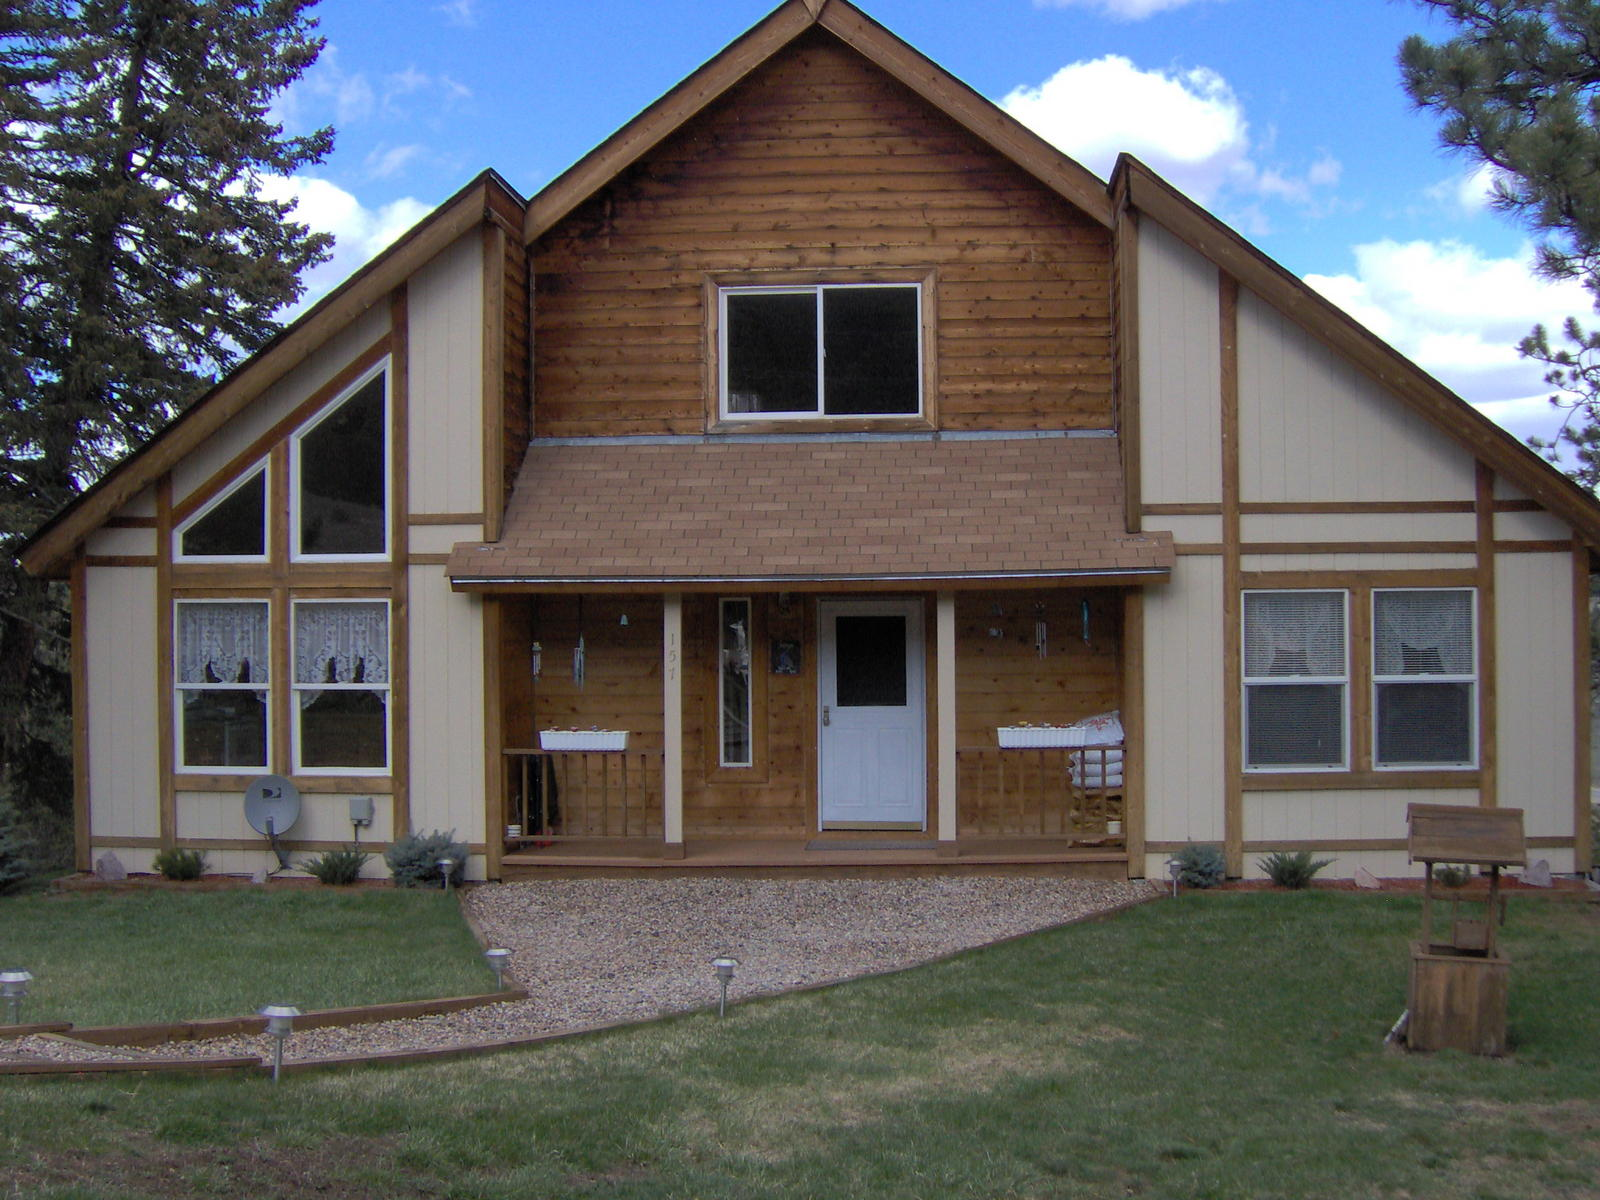 Mountain vacation home near fort collins co classified for Cabin rentals near fort collins colorado